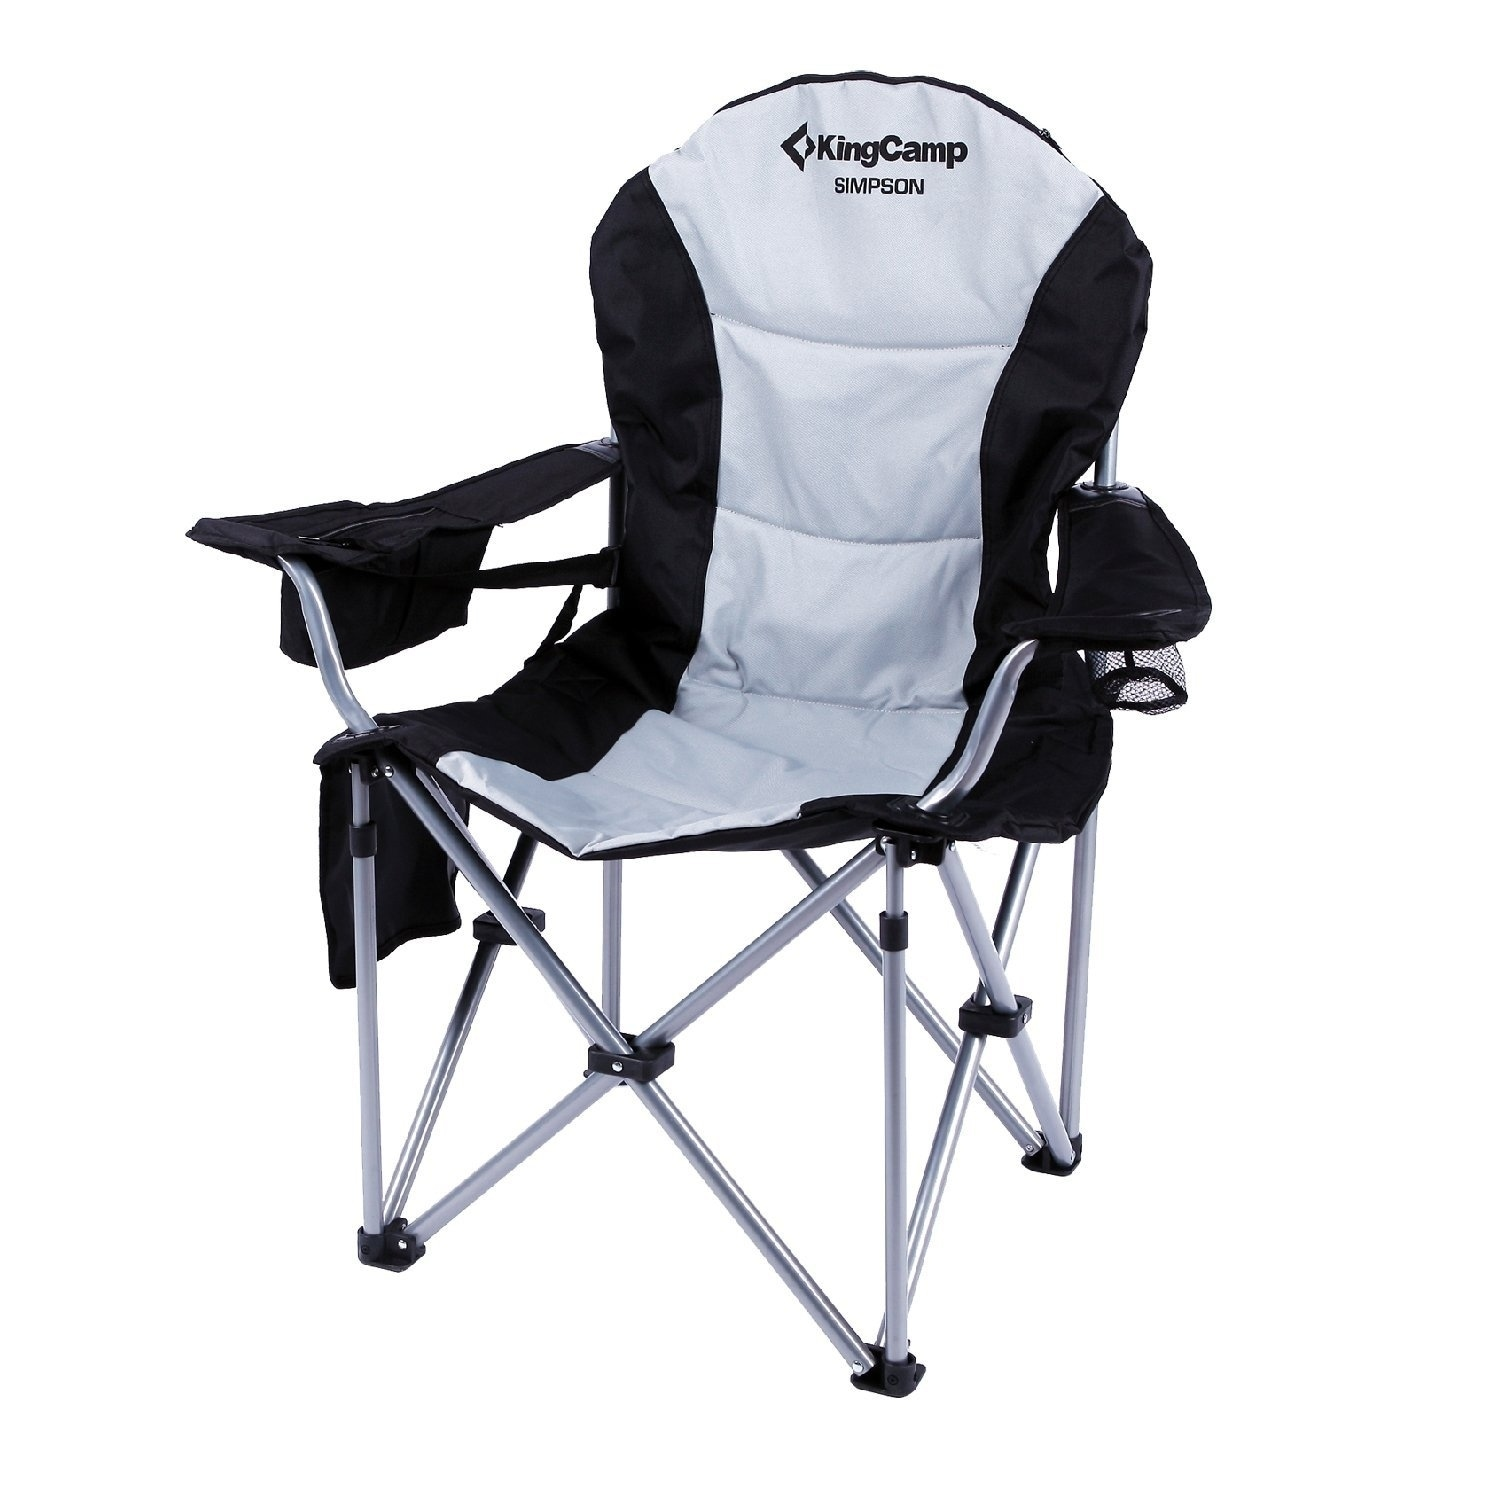 folding quad chair baby rocking glider shop kingcamp lumbar back support light weight portable